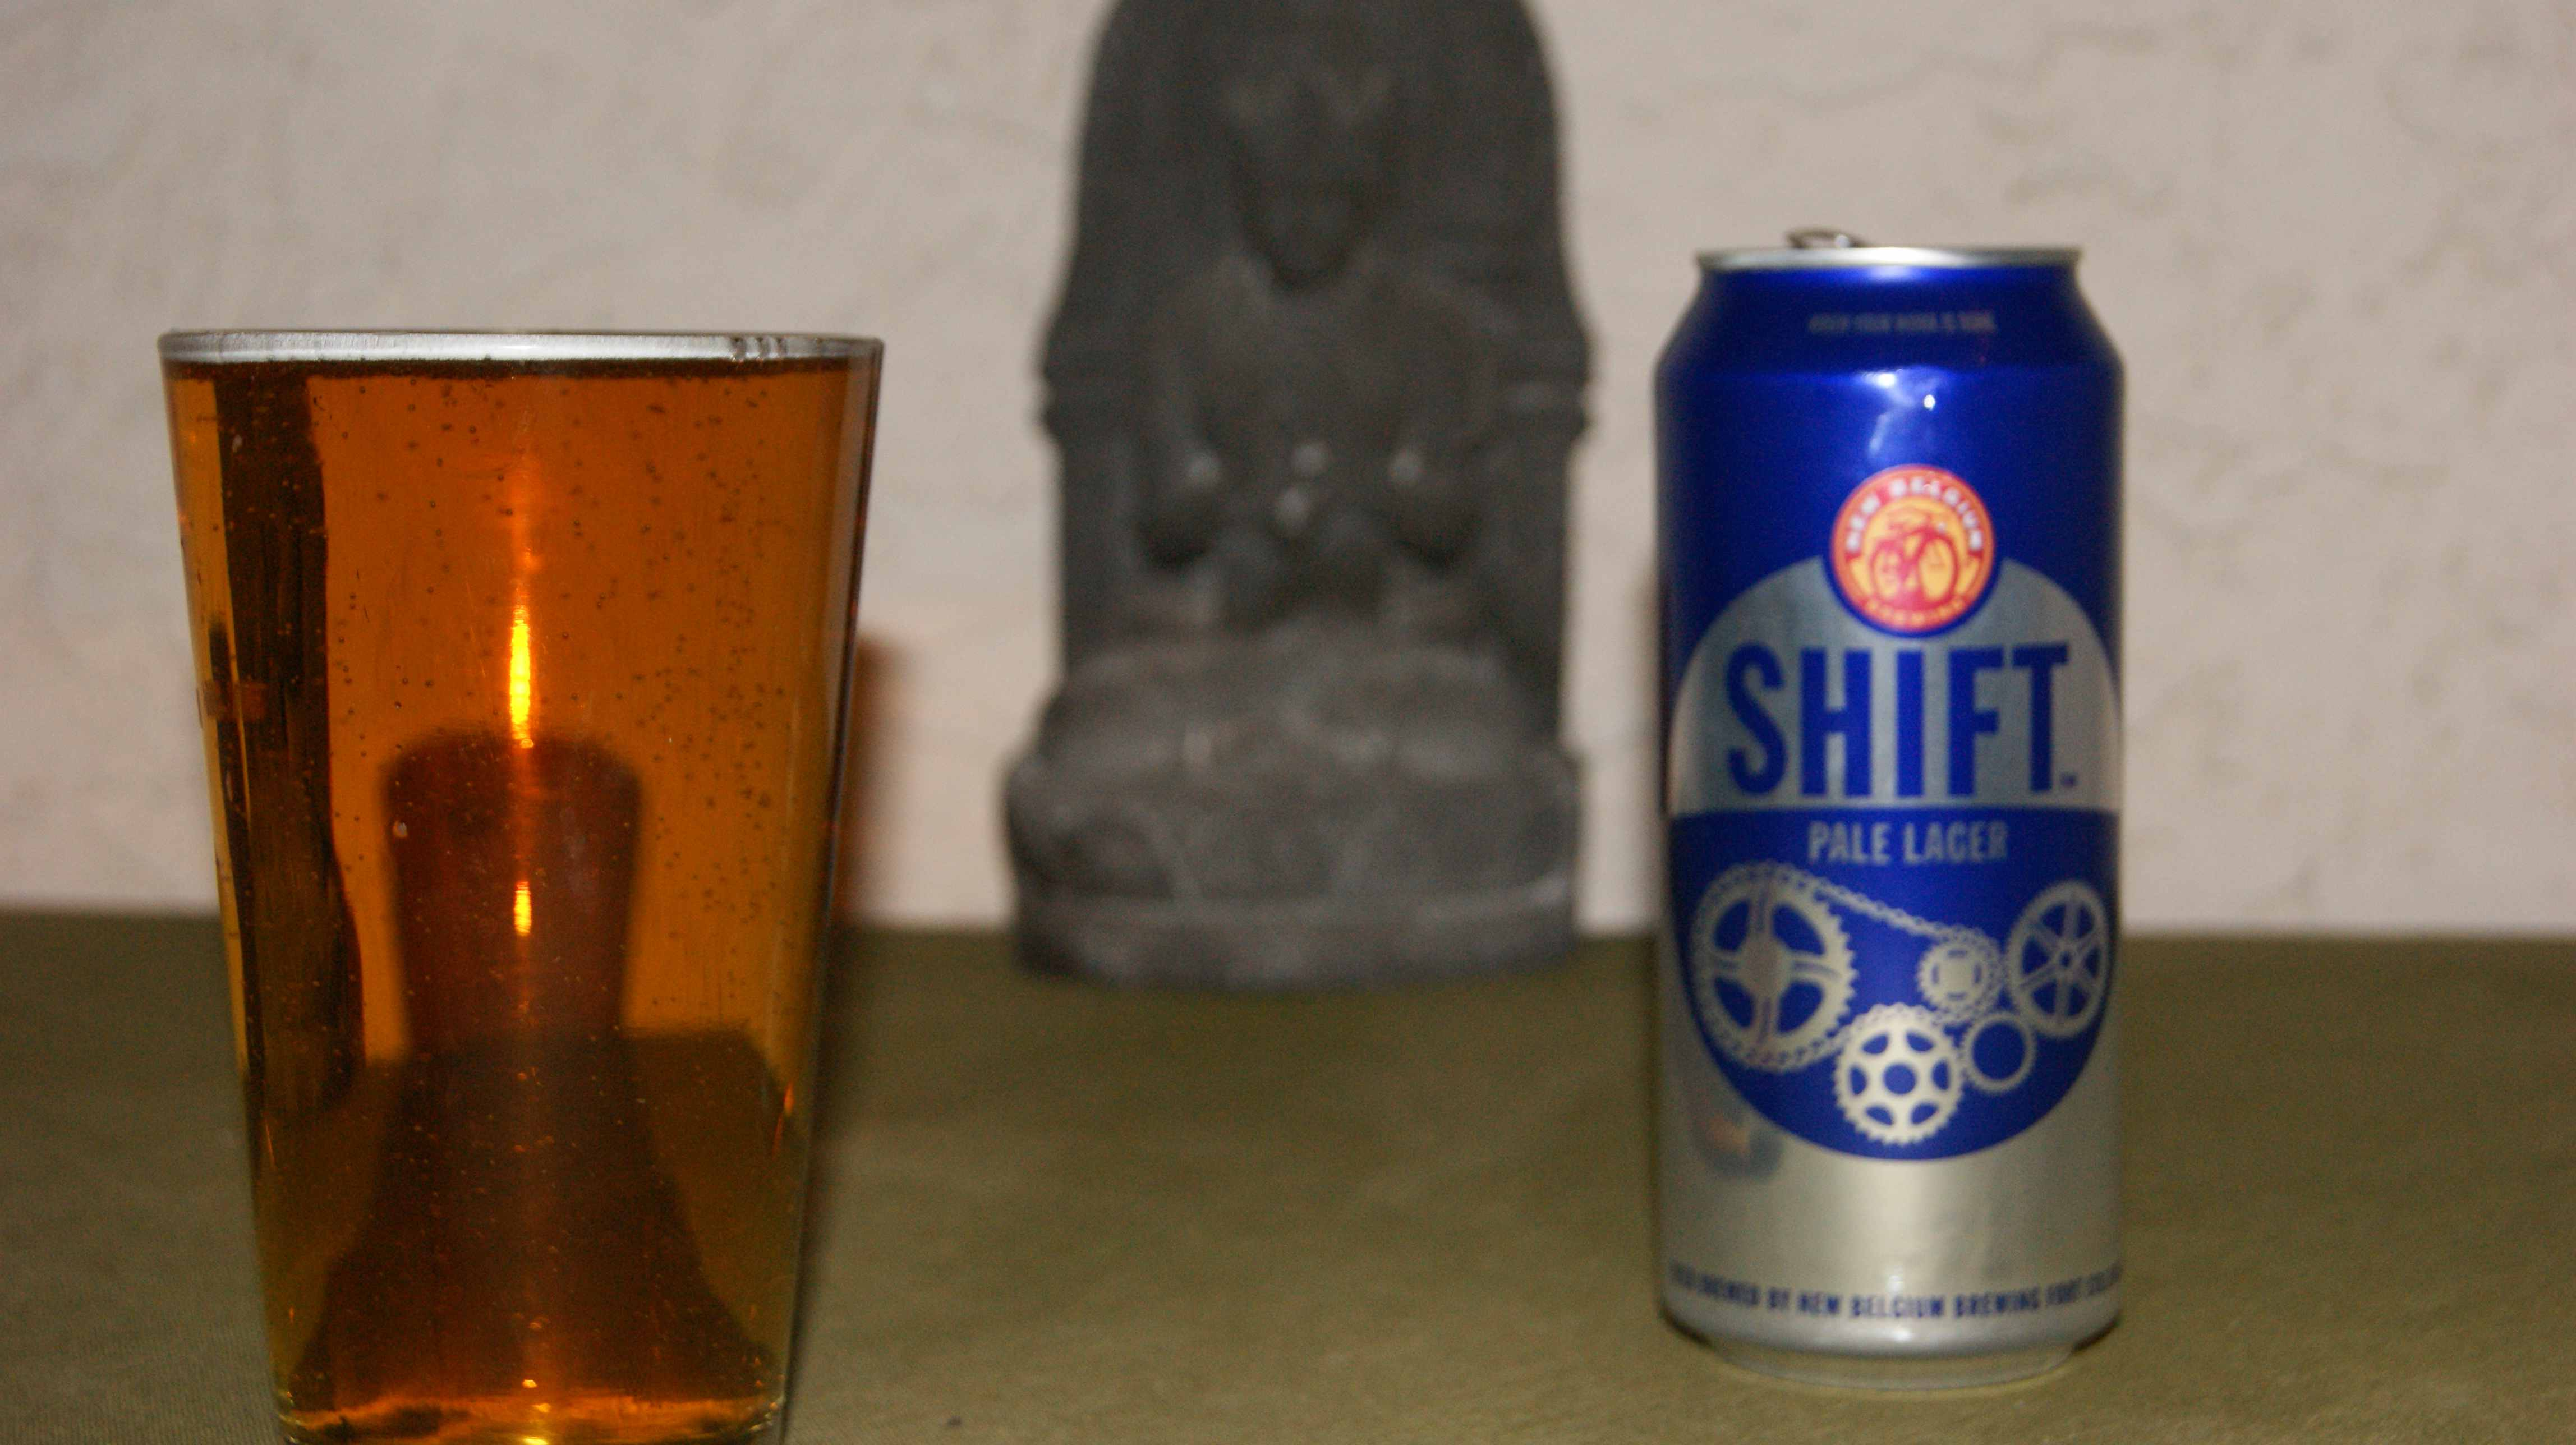 Shift by New Belgium Brewing